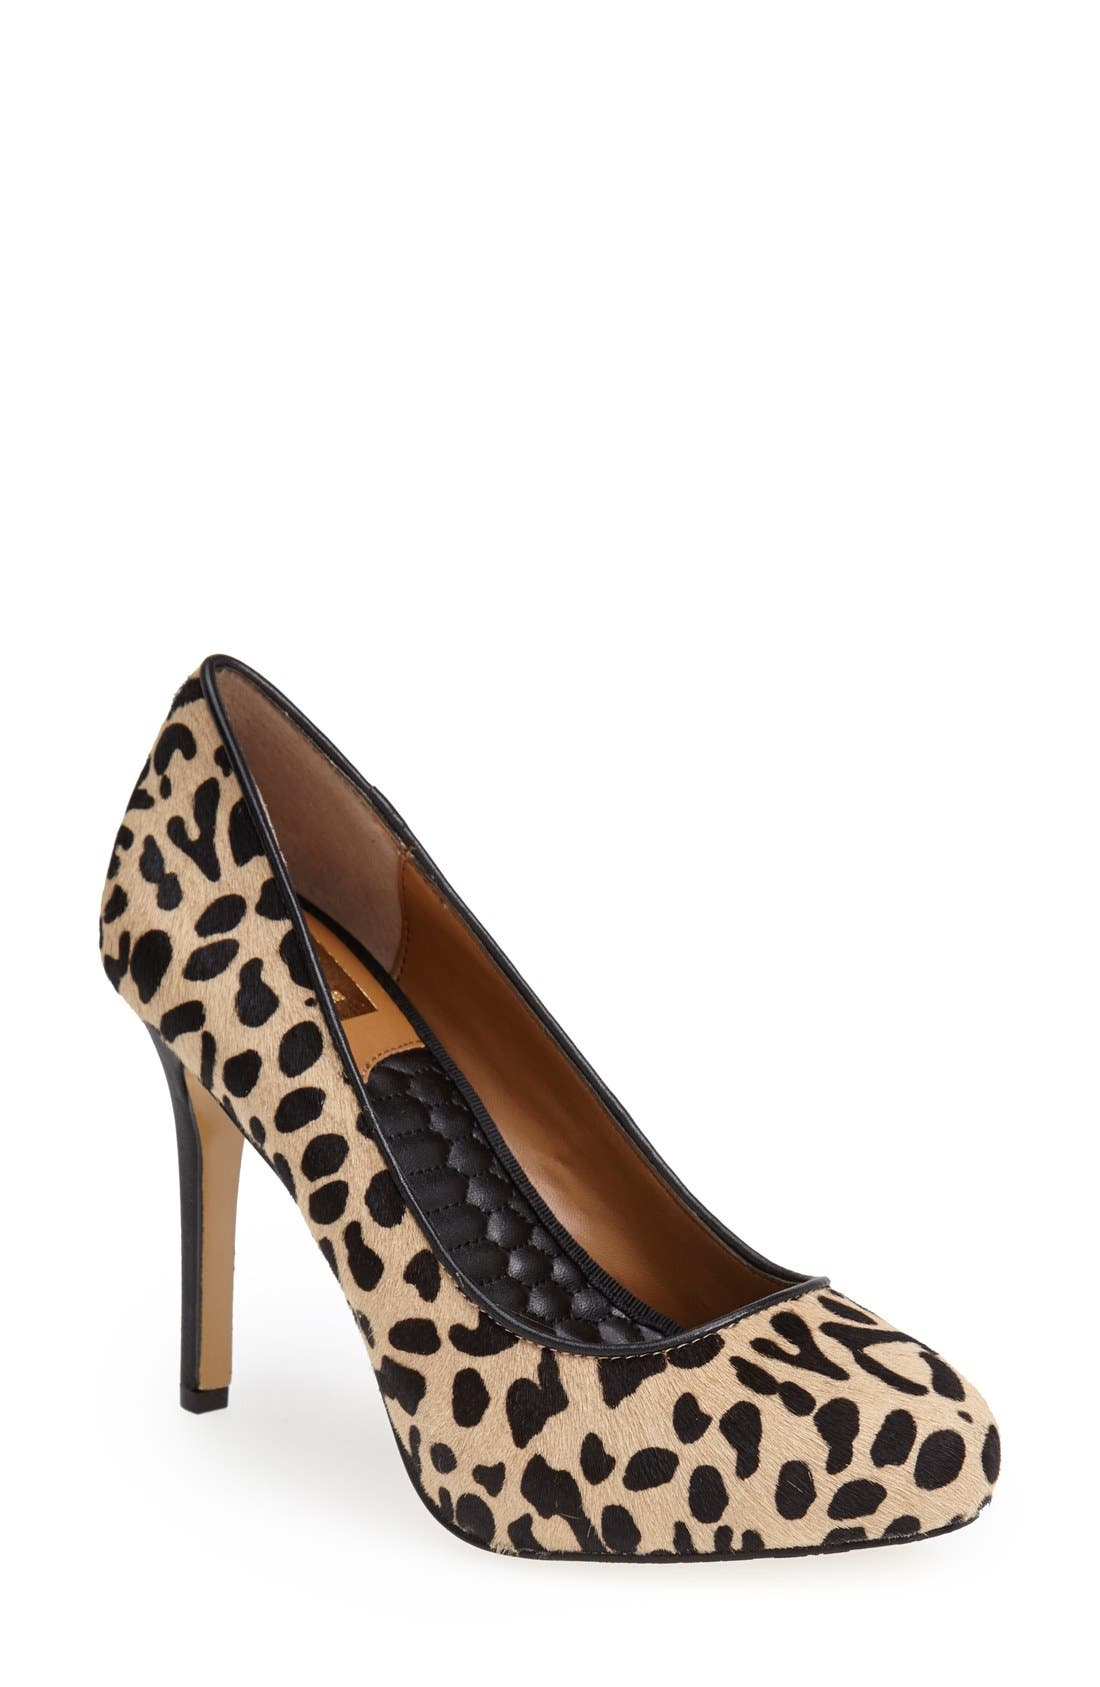 Main Image - DV by Dolce Vita 'Graysen' Pump (Women)